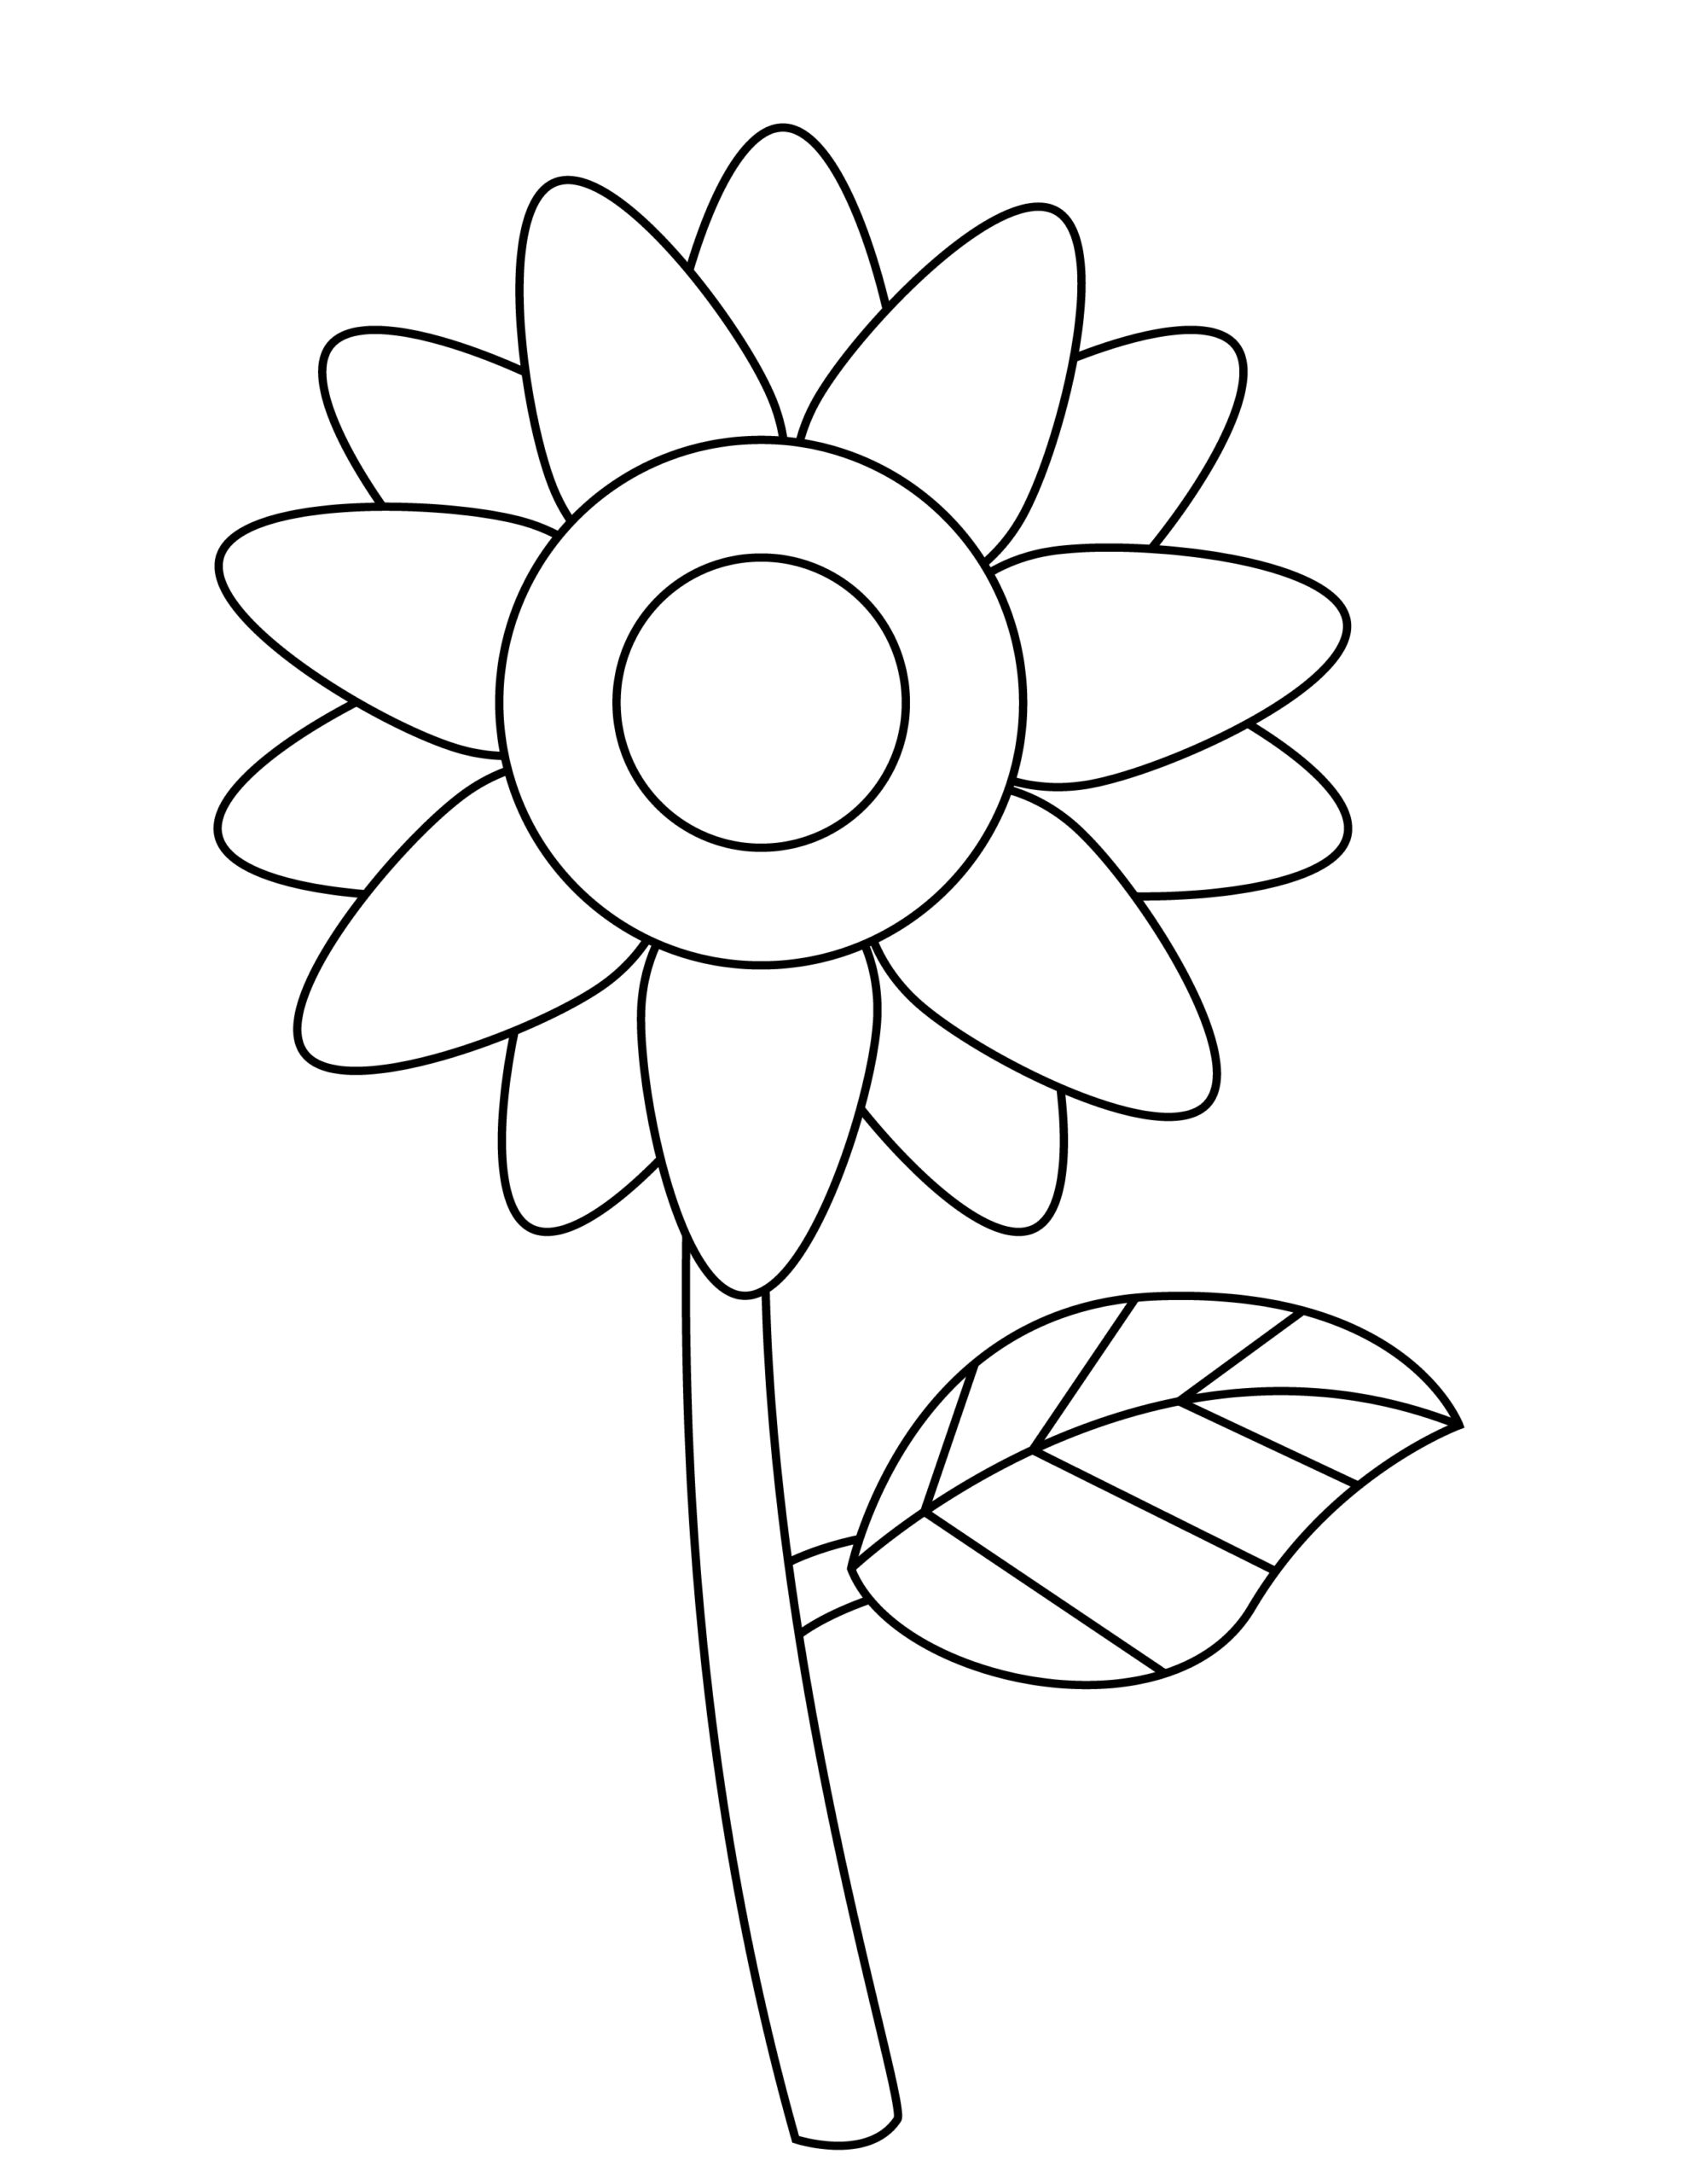 Printable sunflower template for summer template crafts for kids, preschoolers and toddlers